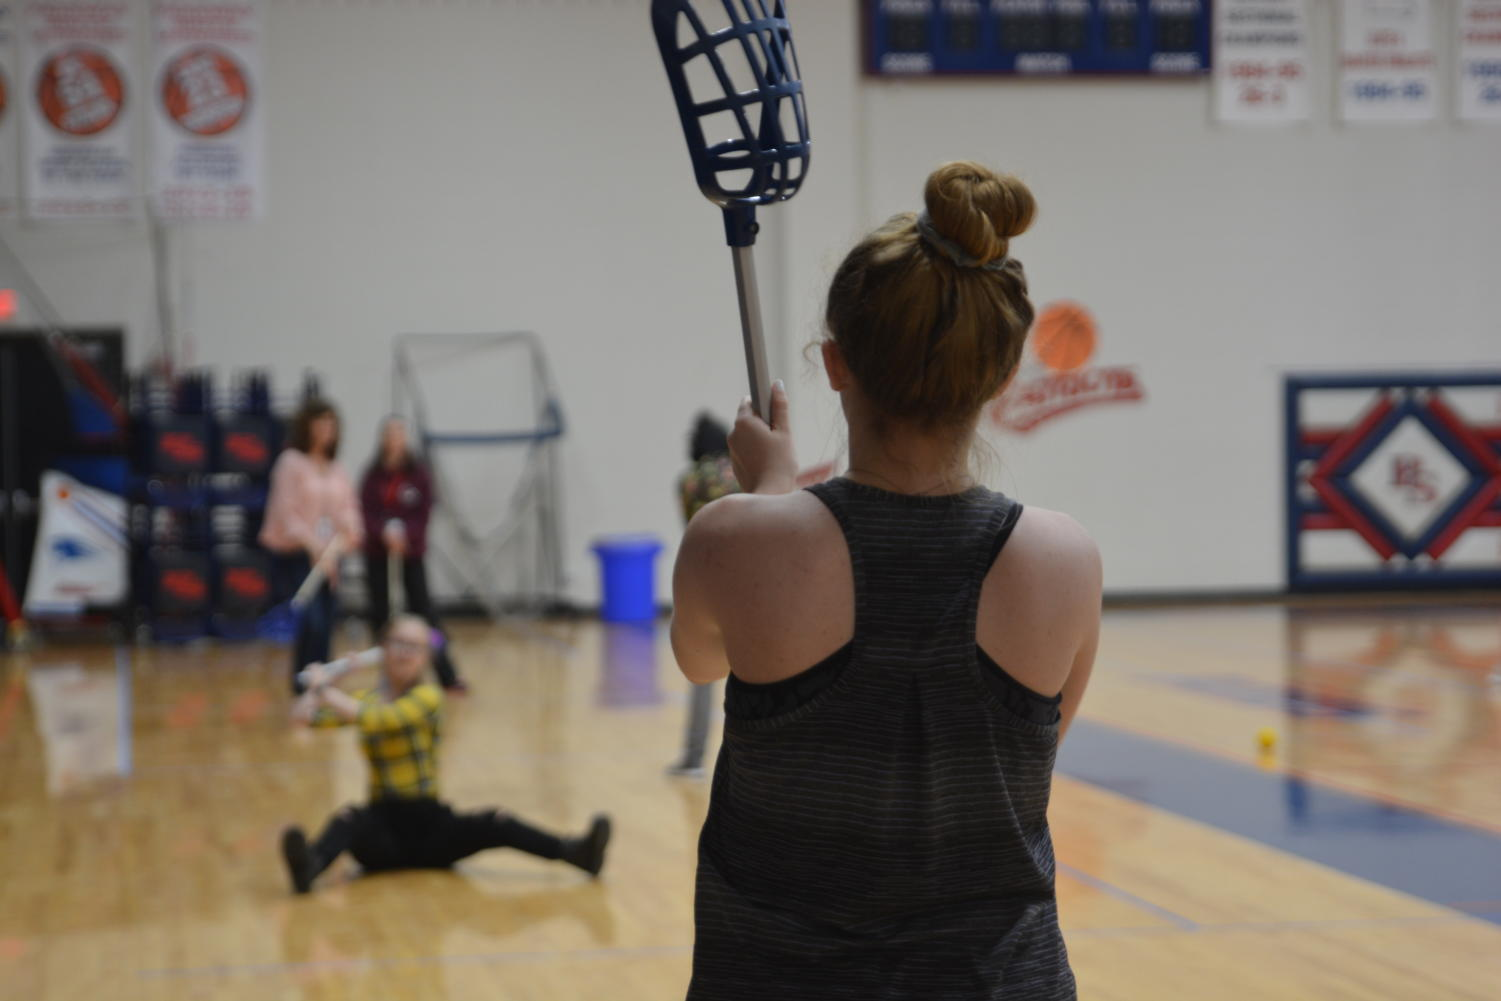 Two students play catch with a lacrosse ball during Mr. McFarland's 5th block Let's Move Together class. Starting in 2020, students will be able to take P.E. courses online.